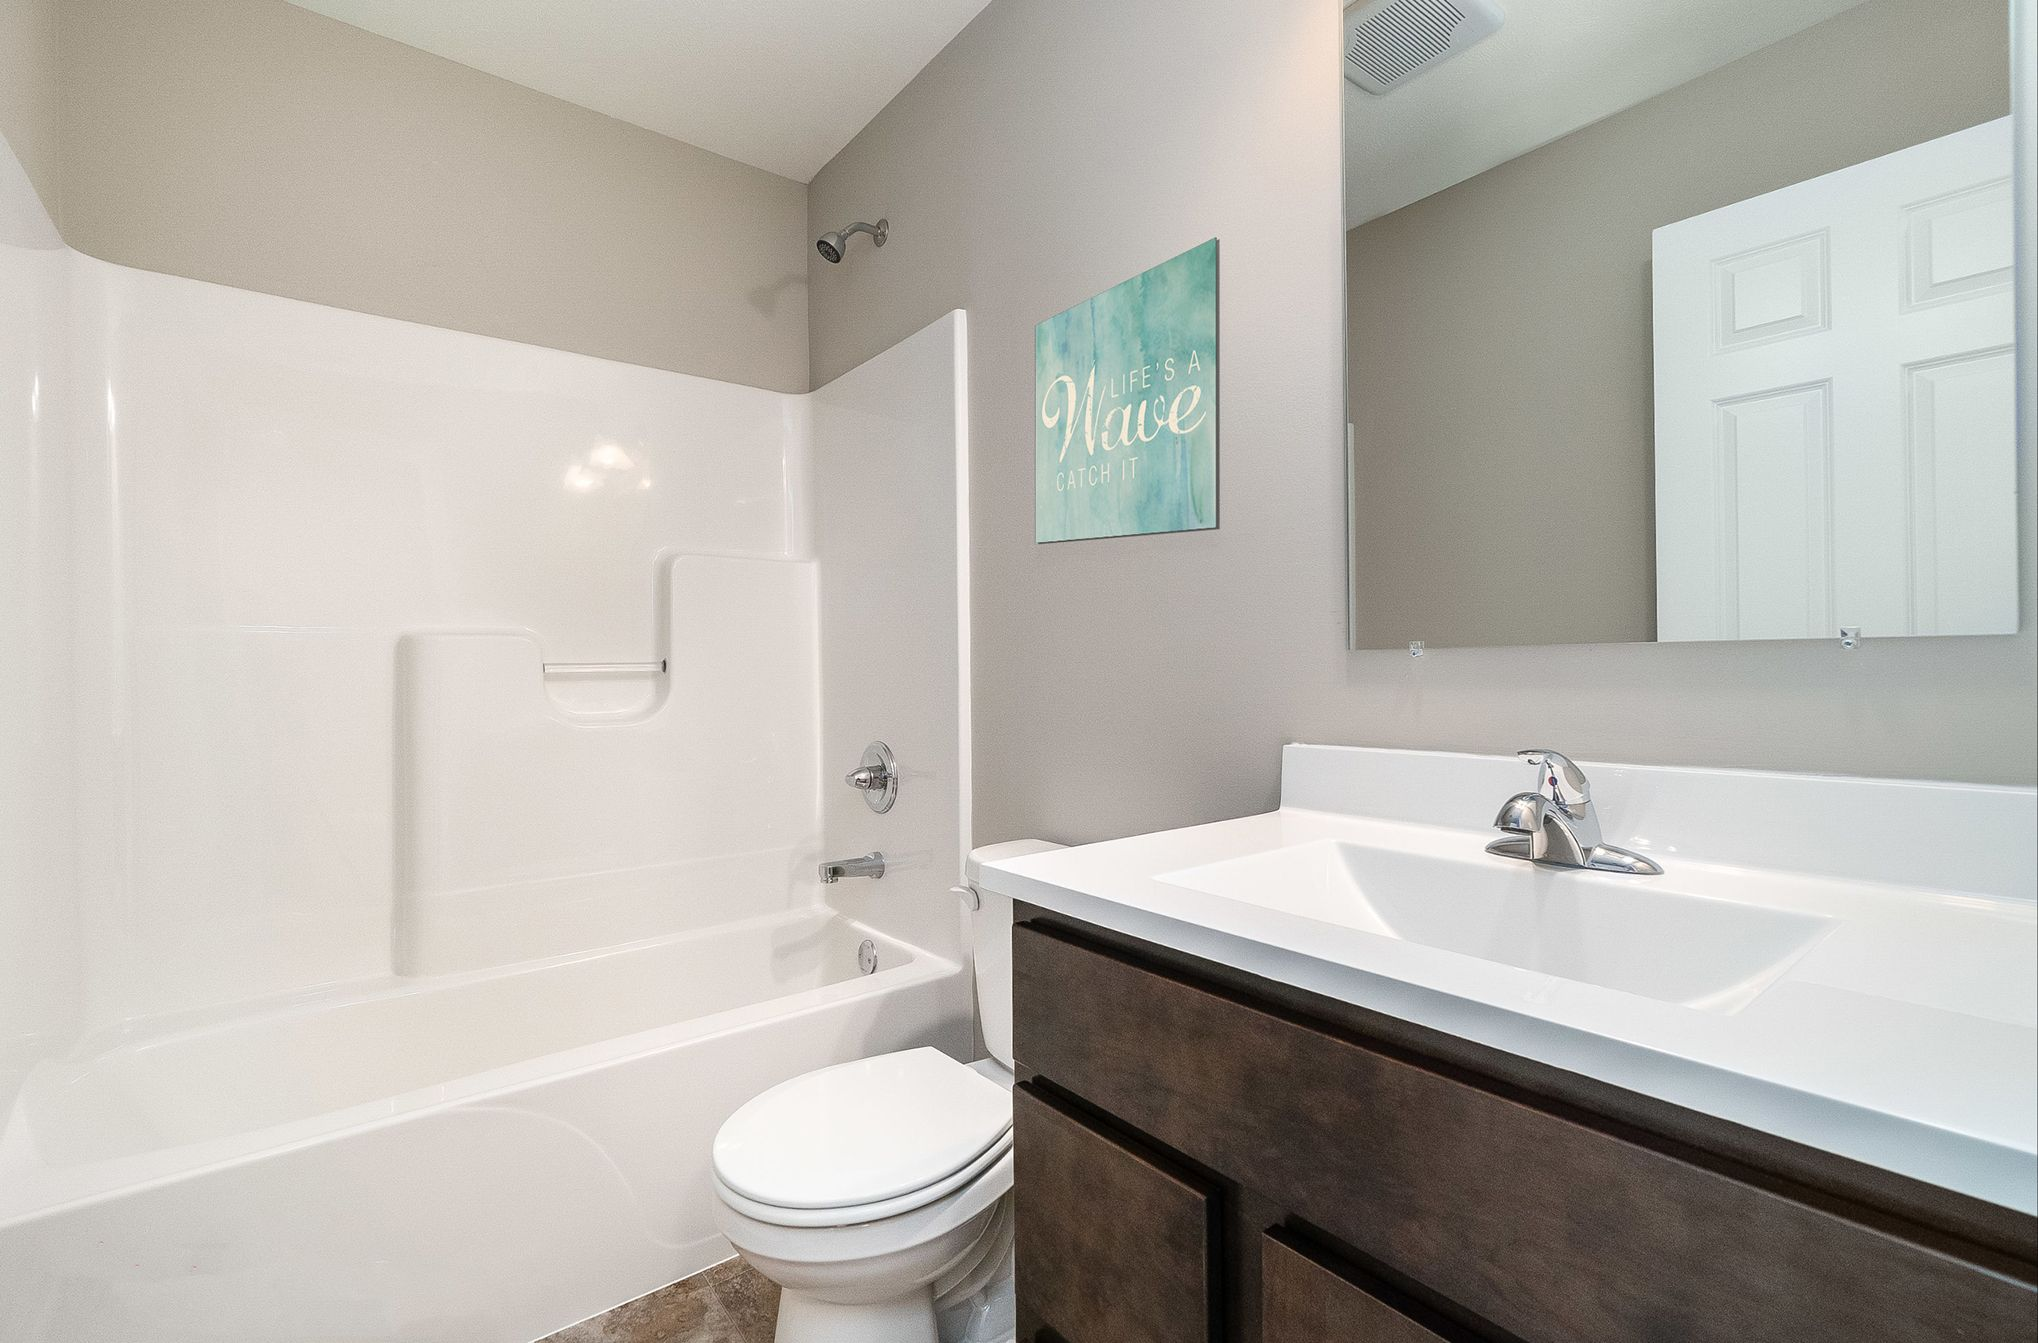 Bathroom featured in the Aria By Olthof Homes in Indianapolis, IN